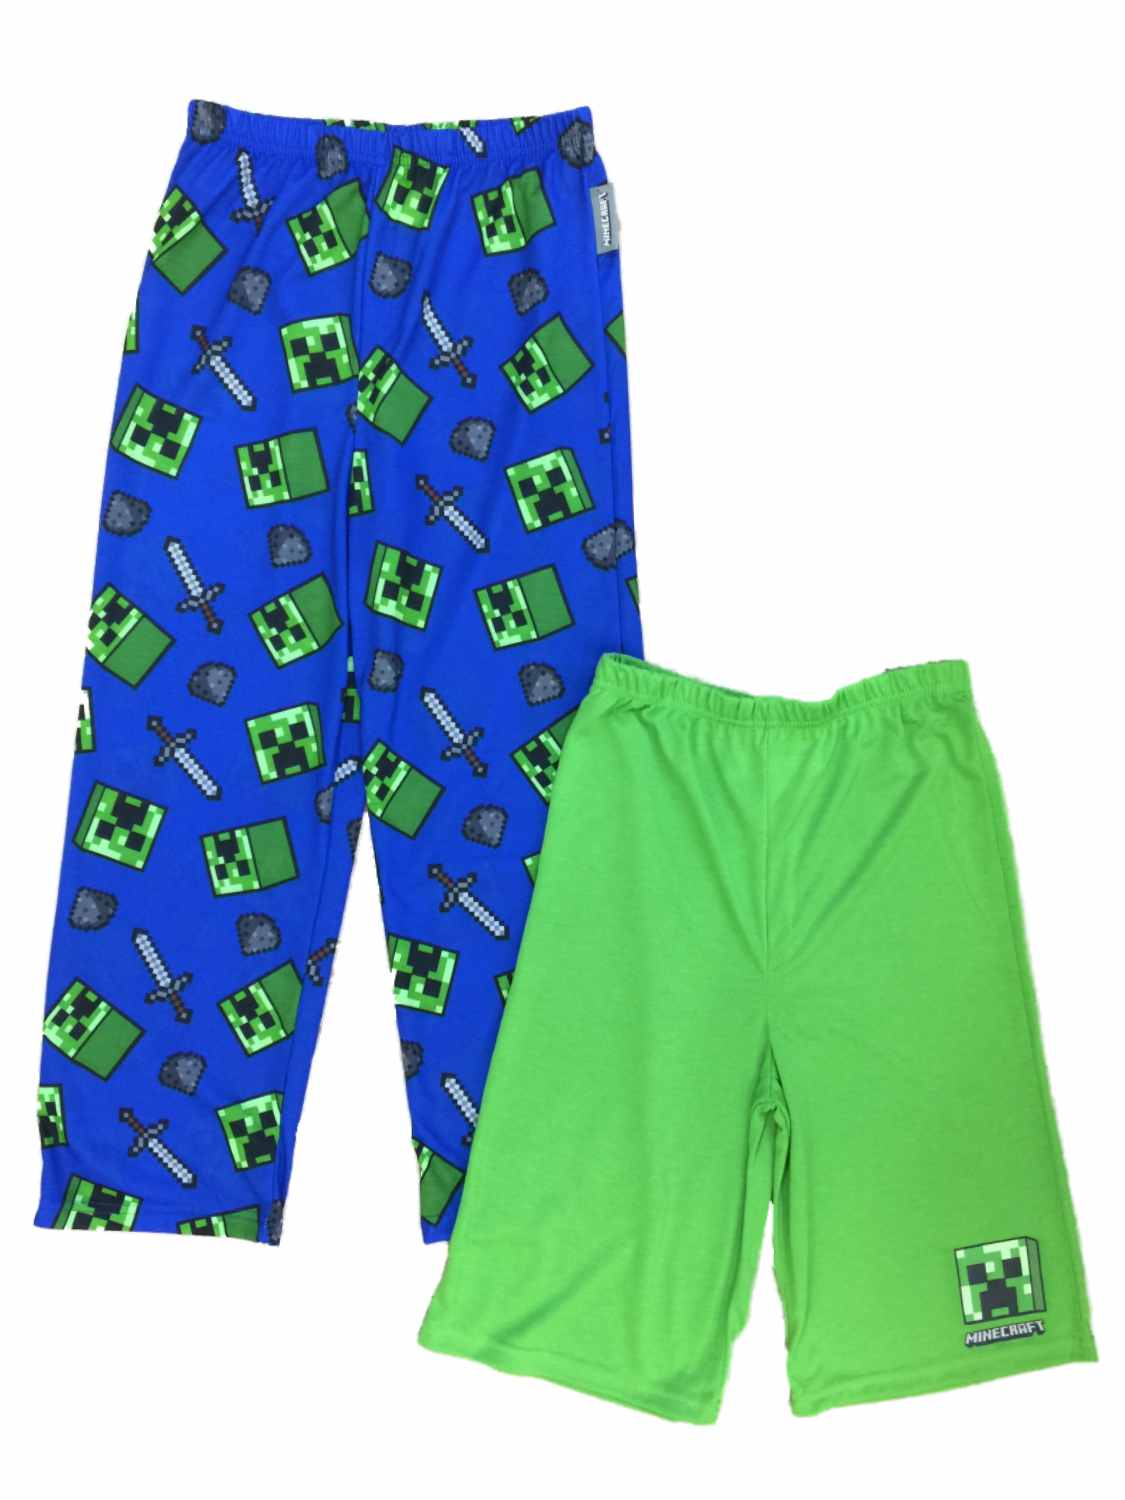 Boys Minecraft Pajama Bottoms Lounge Pants & Sleep Shorts Set Mine Craft